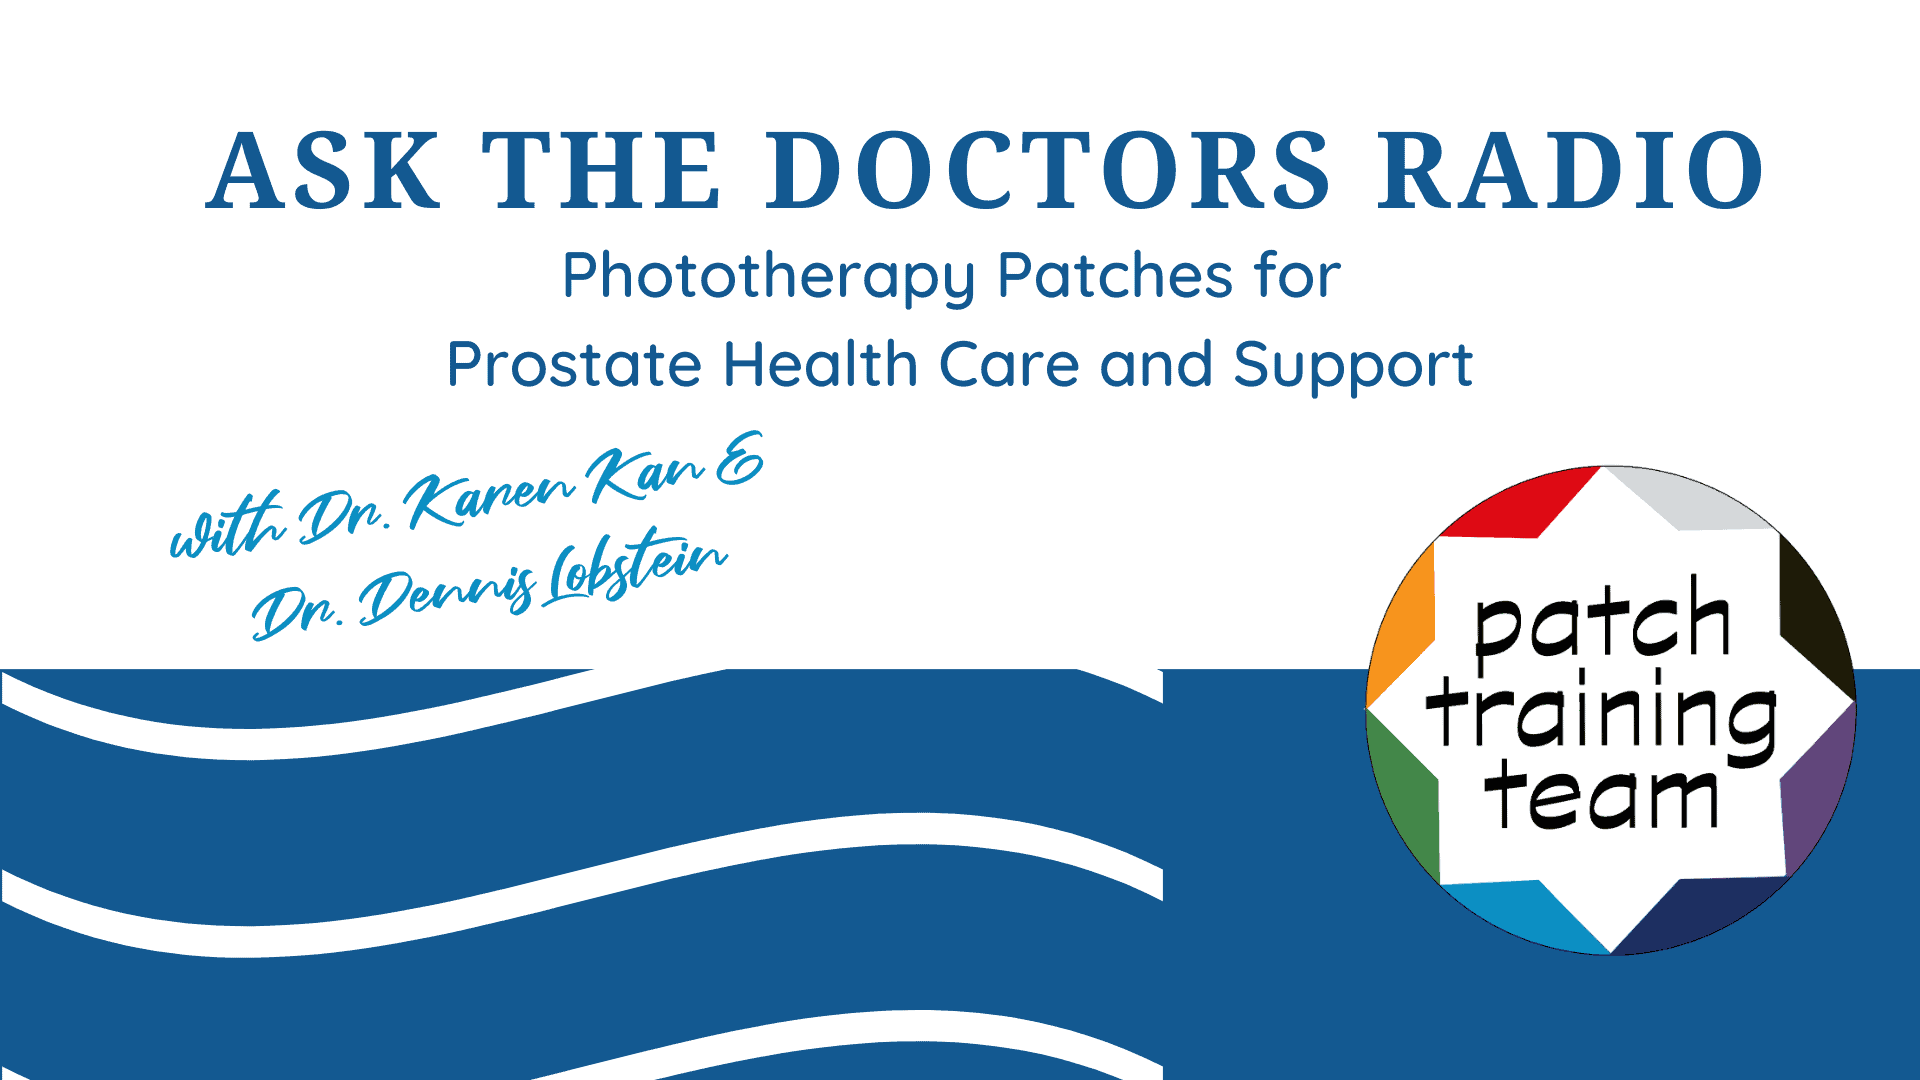 Ask-The-Doctors-Radio-Phototherapy-Patches-for-Prostate-Health-and-Support-Dr-Dennis-Lobstein-and-Dr-Karen-Kan-patch-training-team